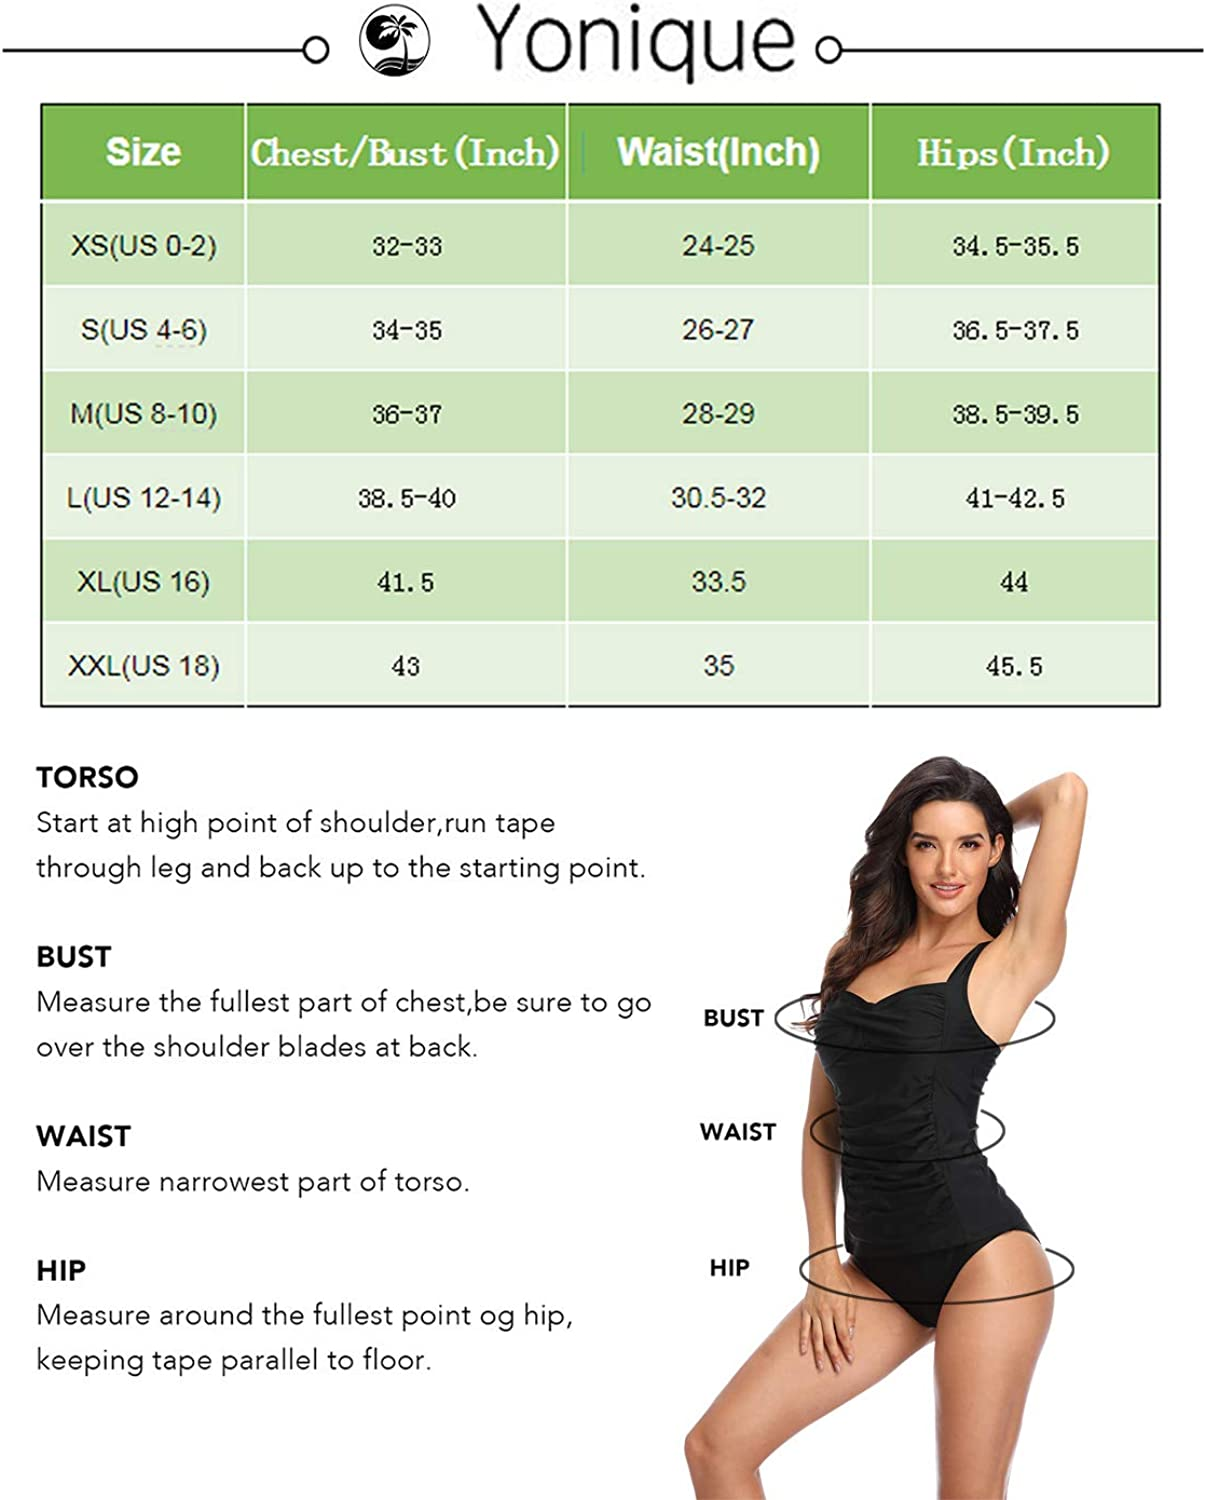 Yonique Womens One Shoulder Tankini Swimsuit Top Asymmetric Ruffle Tank Top Ruched Tummy Control Swim Tops No Bottoms